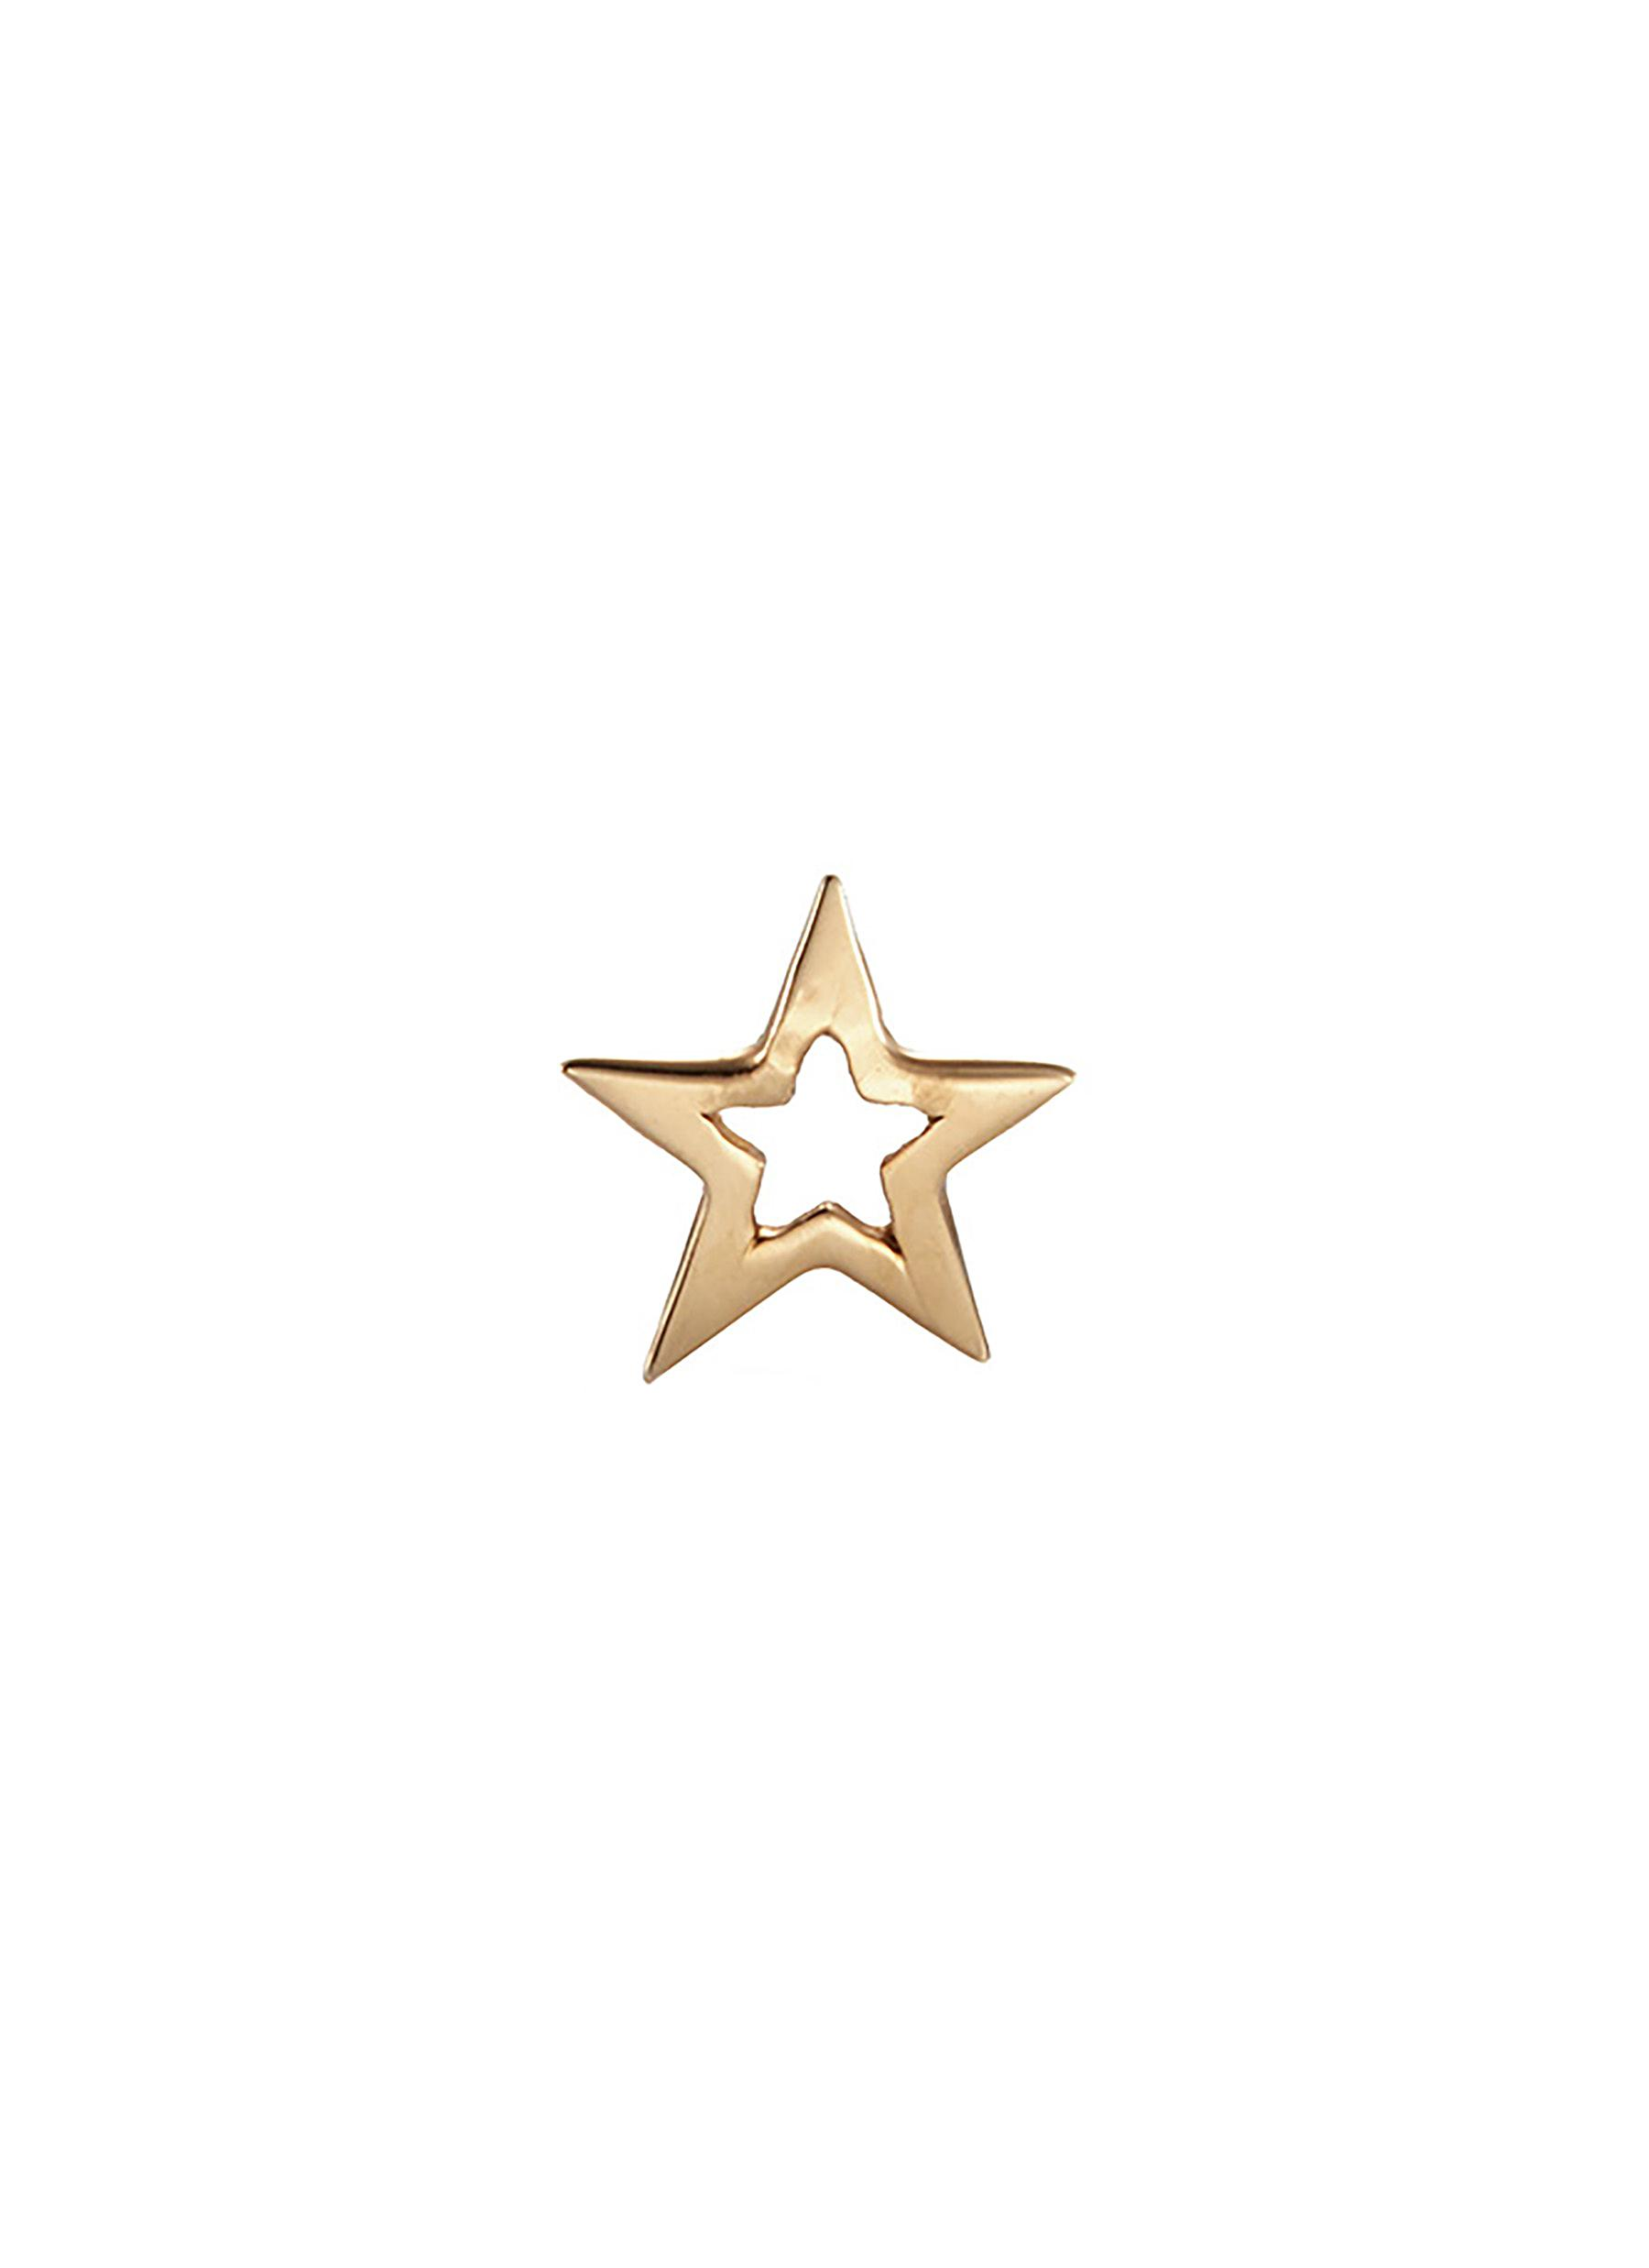 LOQUET LONDON 'Star' 14K Yellow Gold Single Stud Earring – You'Re A Star